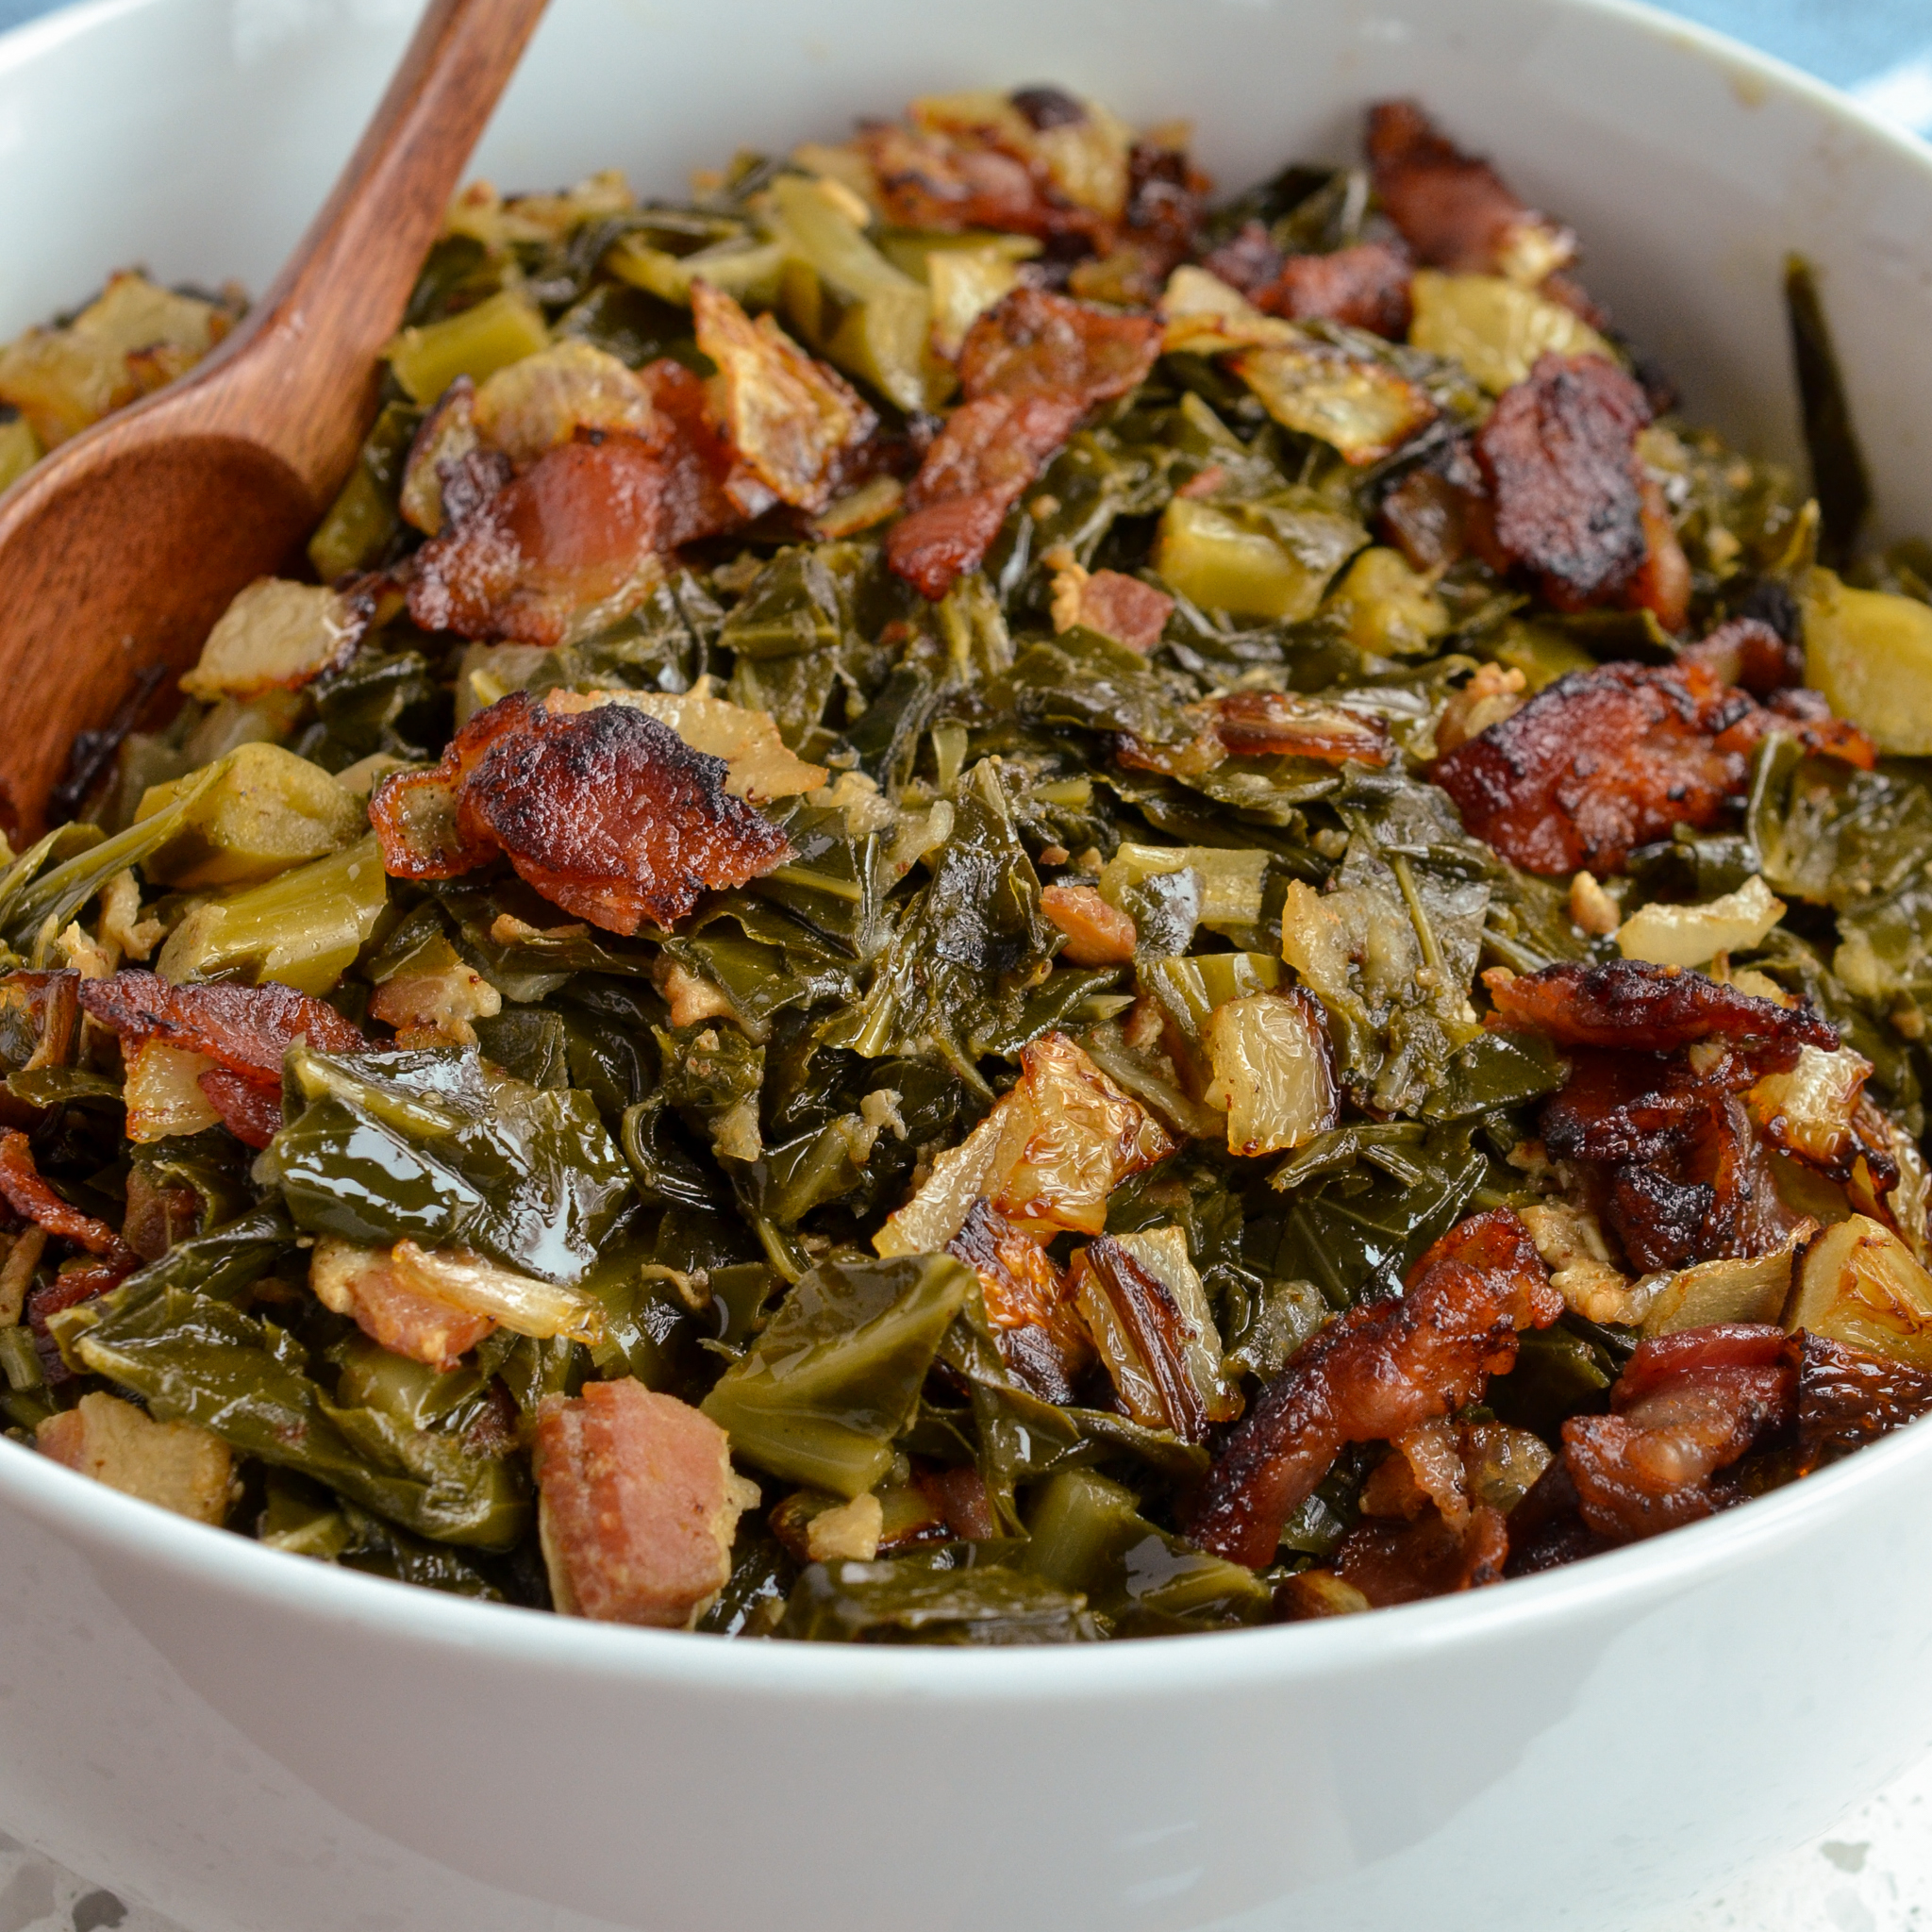 These scrumptious and easy Southern Greens are the perfect side for all your favorite southern main courses.